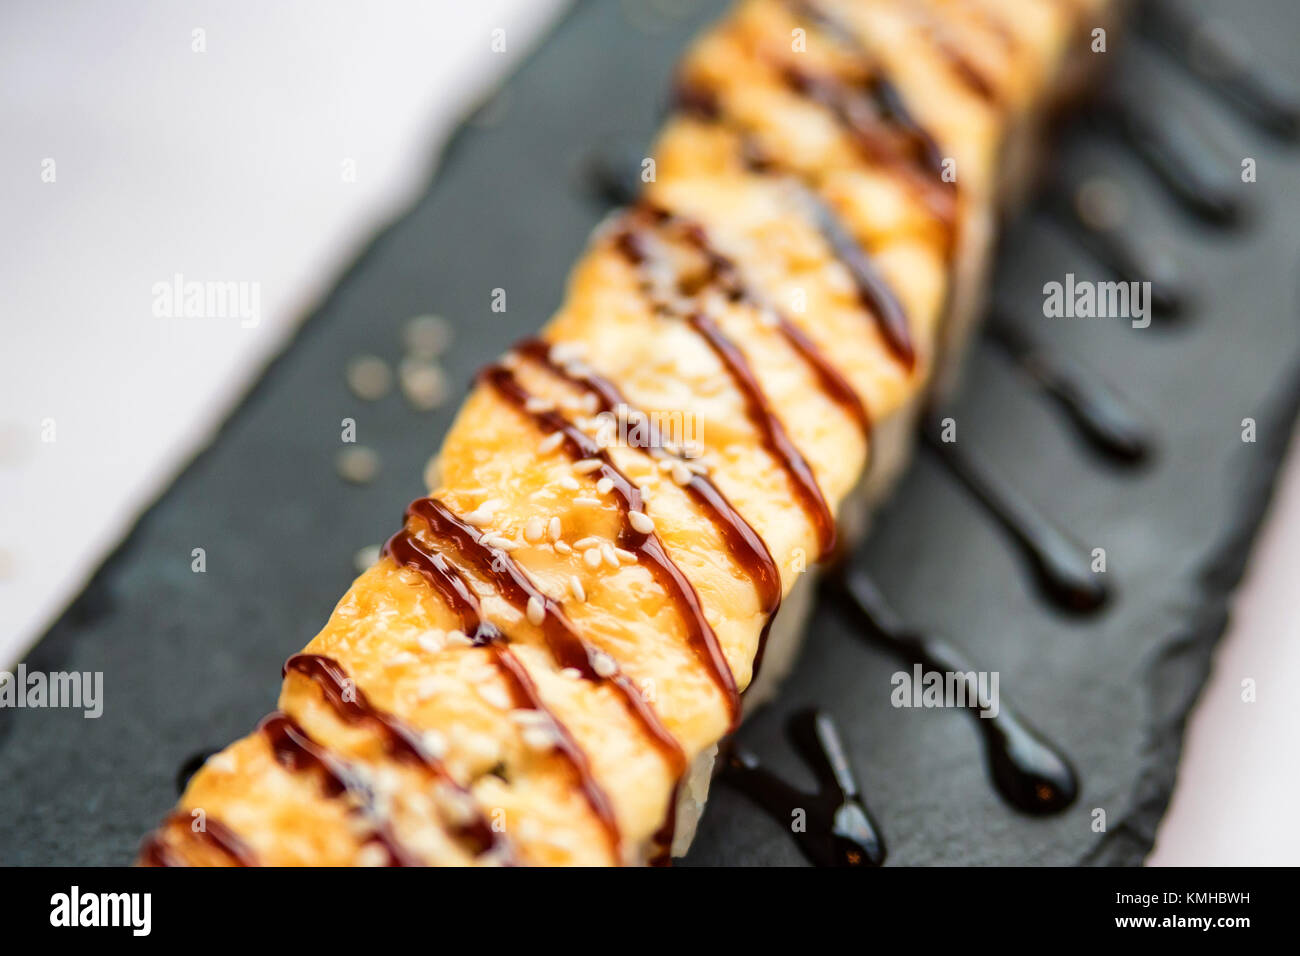 Freshly cooked uncut sushi roll on black board - Stock Image